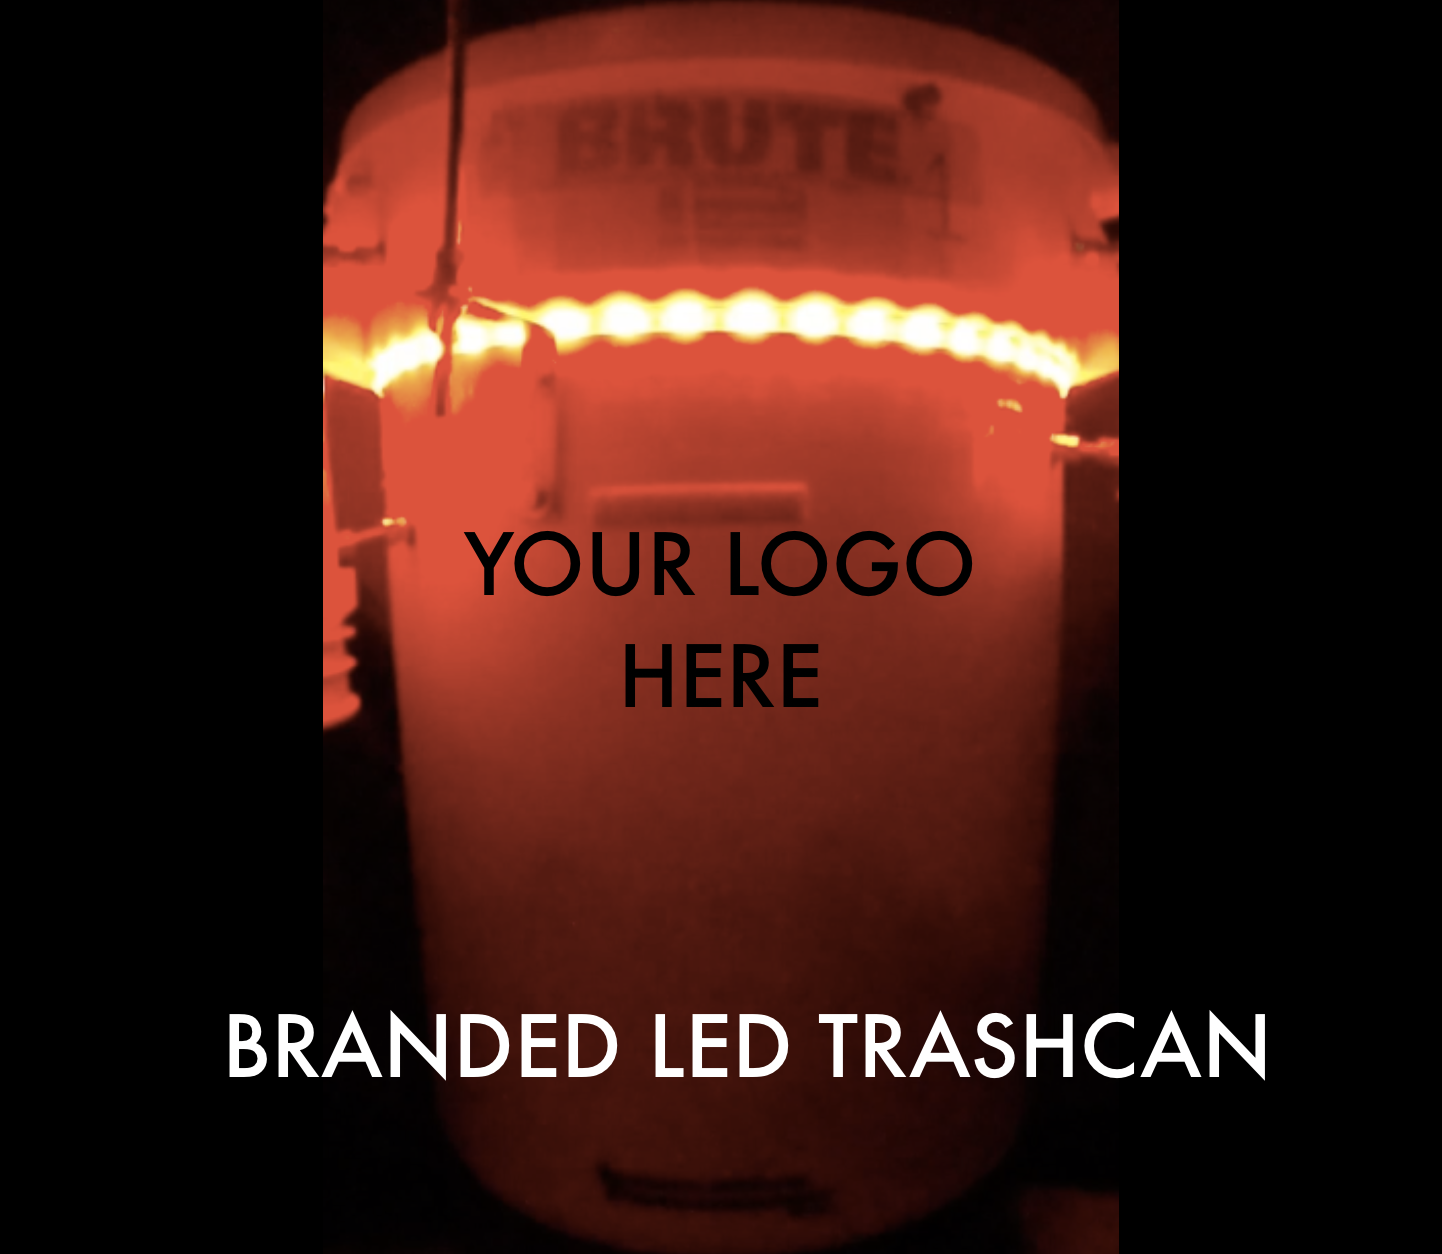 LED TCP Branded Trashcan